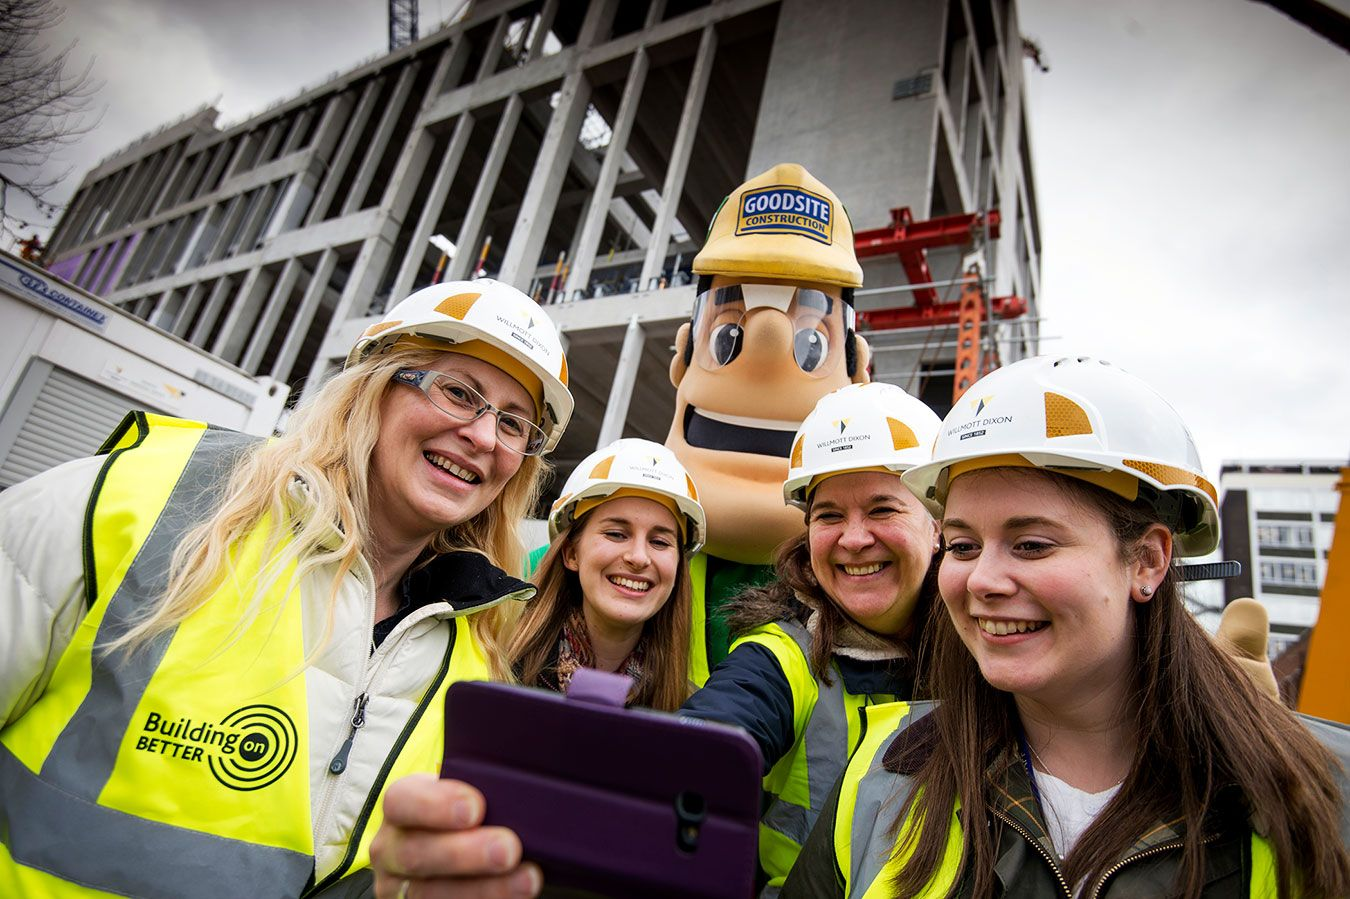 A photo of a group of people and construction industry mascot Ivor Goodsite in front of Town House